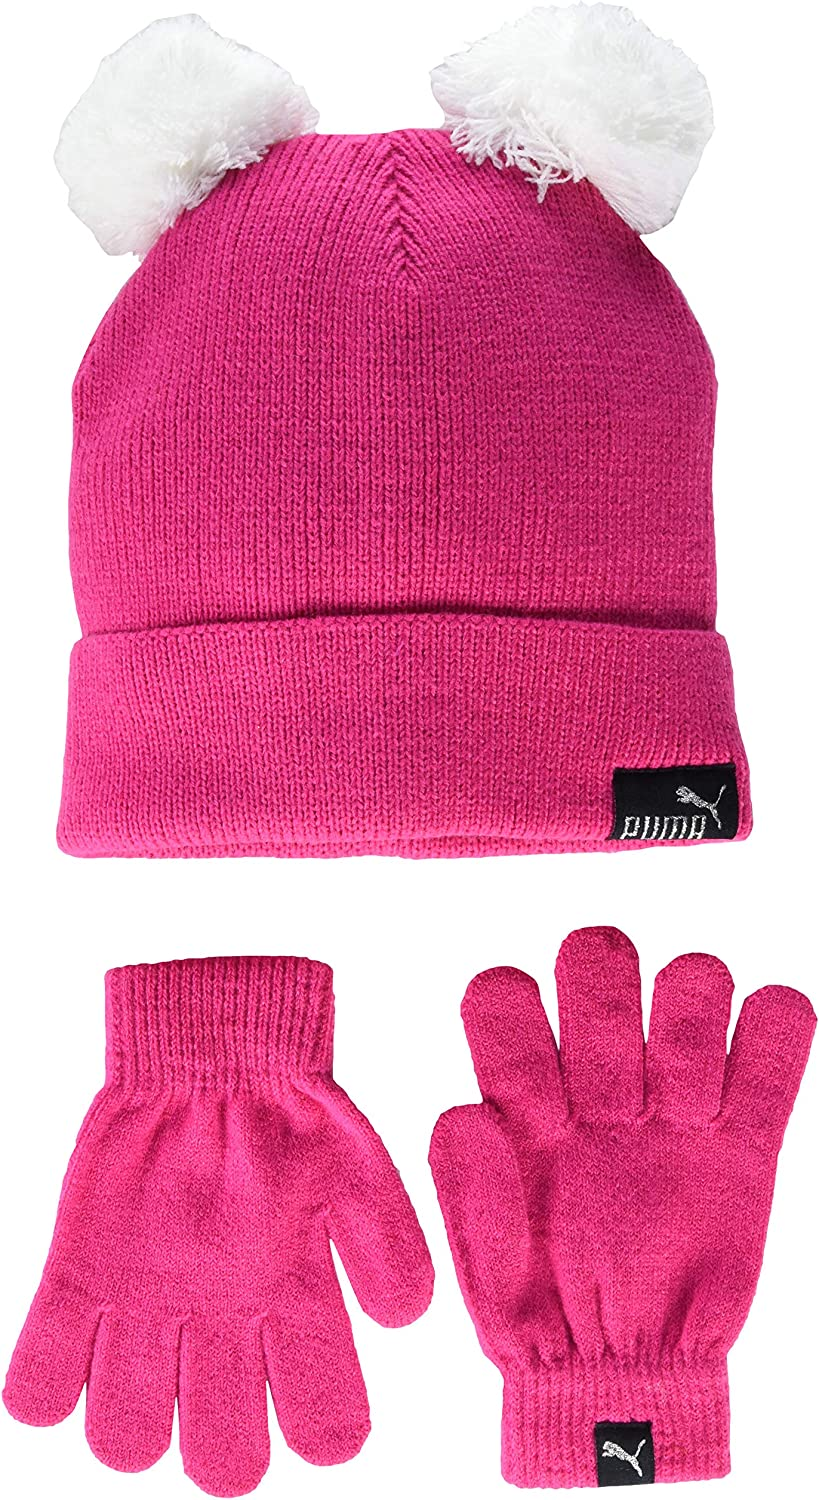 Pink//Black PUMA unisex child Evercat Youth and Glove Set Beanie Hat Youth Size US